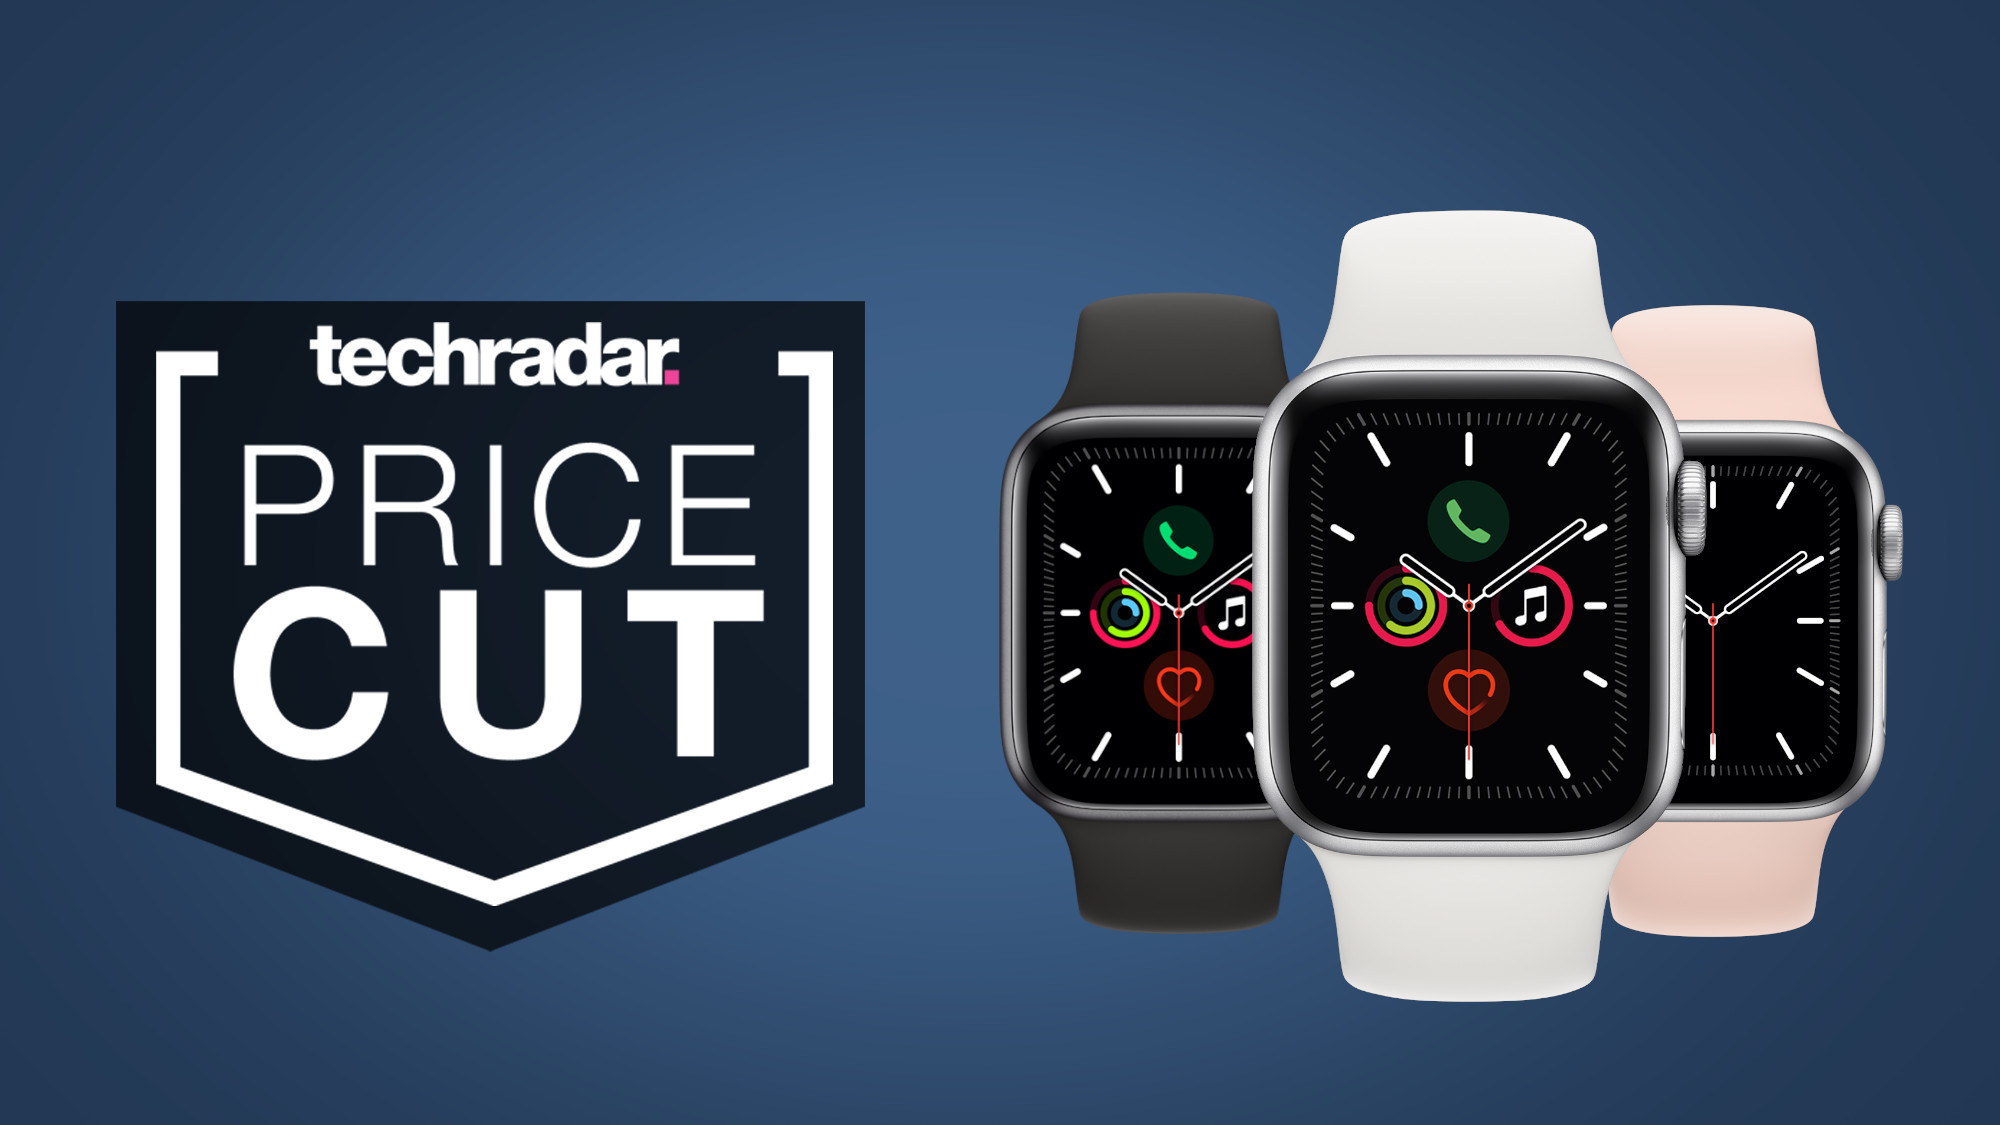 It's a great time for Apple Watch deals thumbnail